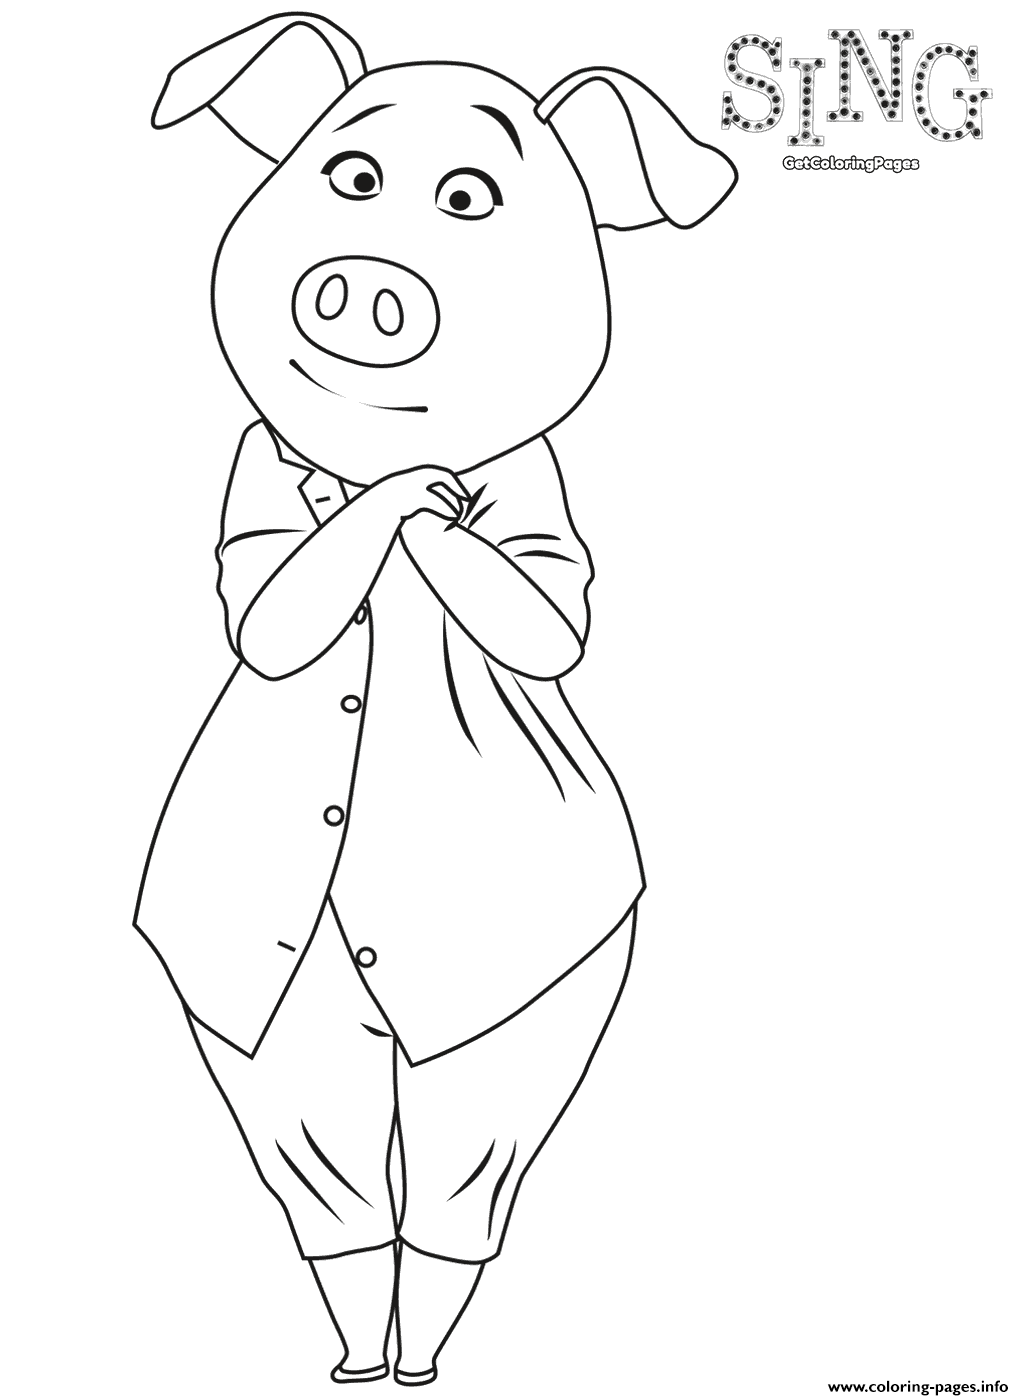 sing colouring page pig rosita coloring pages printable